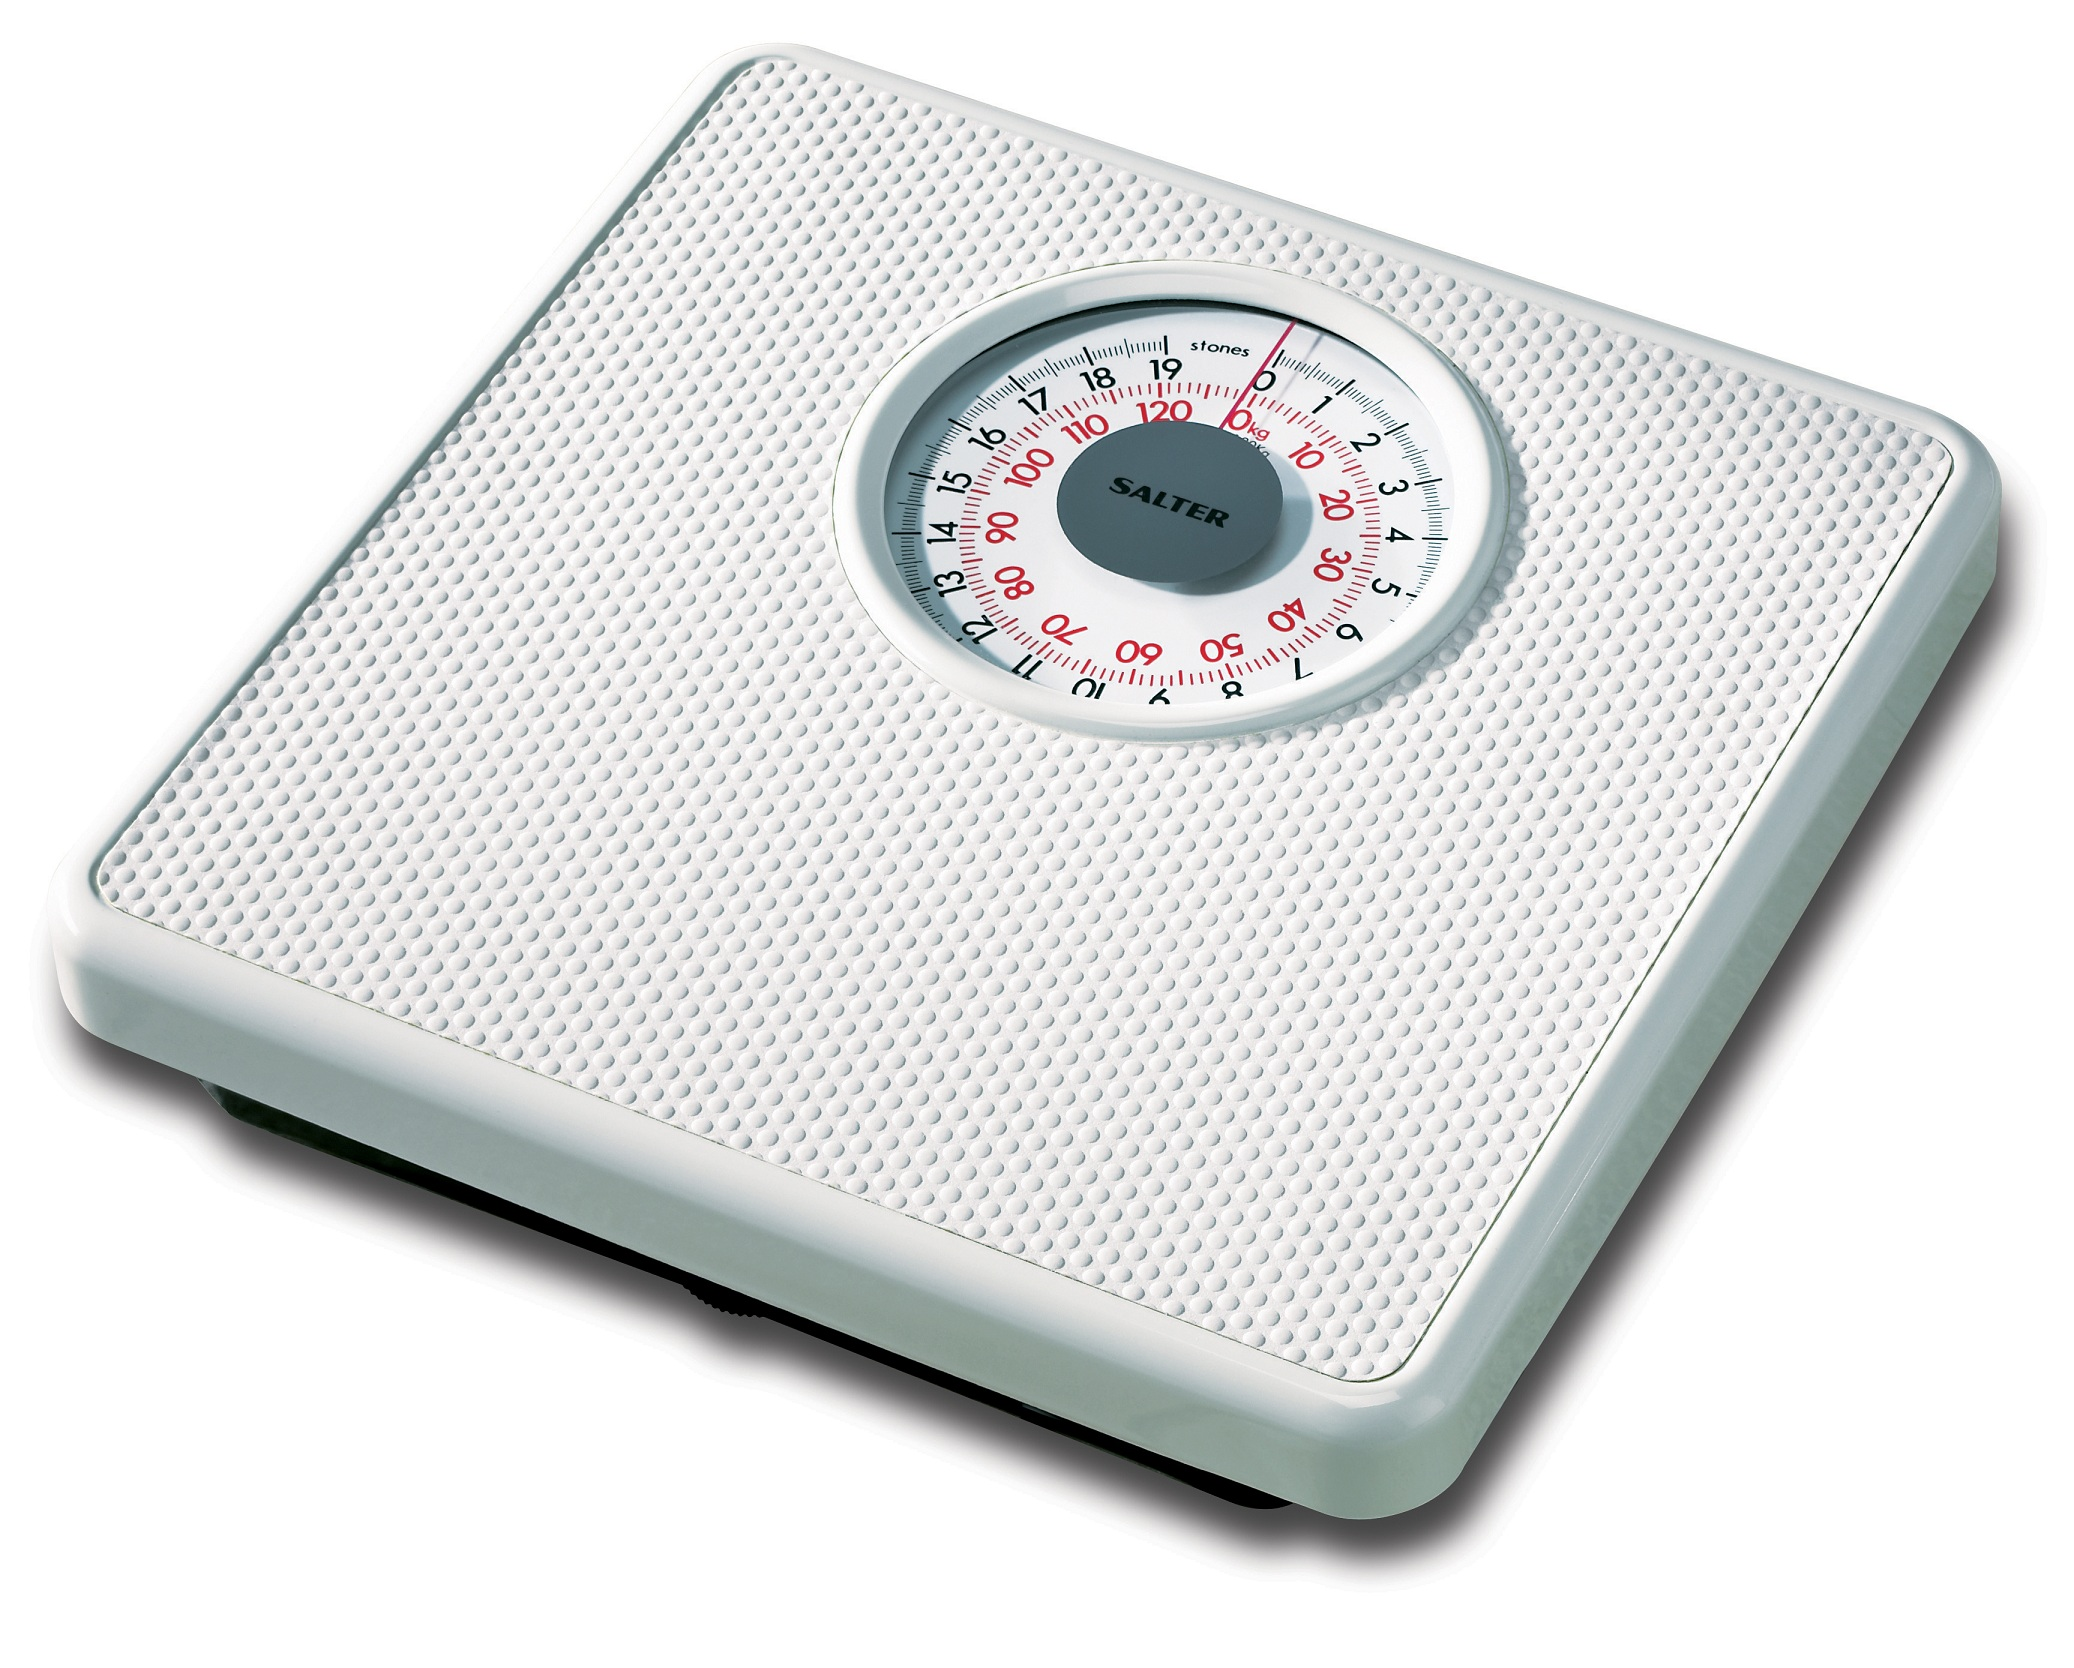 Salter 427 WHDR Mechanical Bathroom Scale - White Enlarged Preview